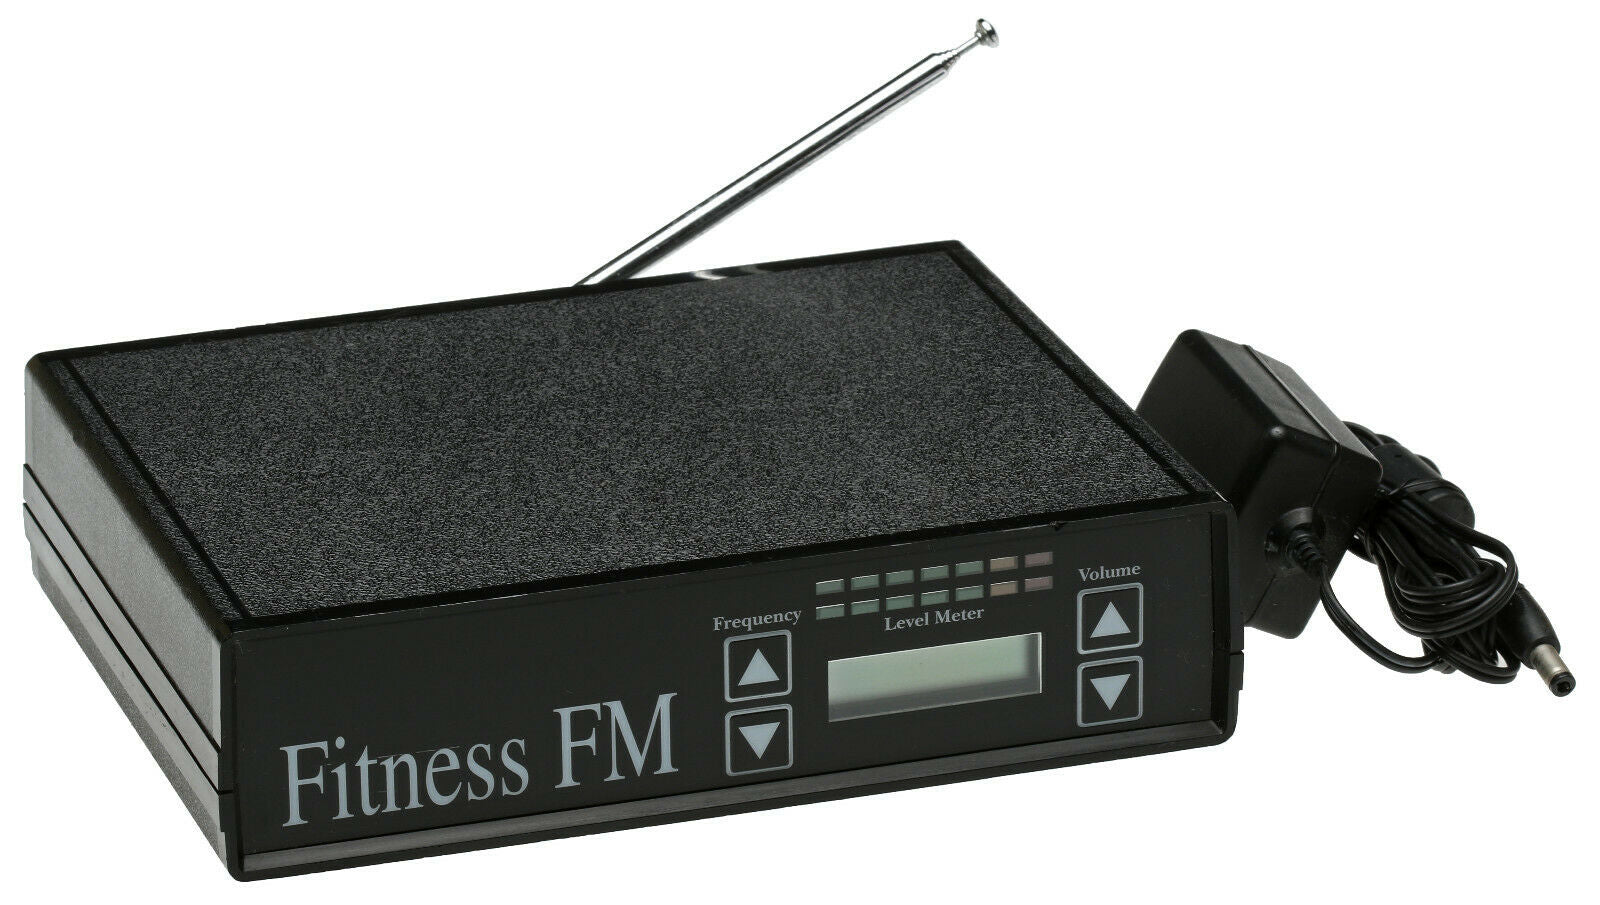 Cardio Theater Fitness FM Stereo Low Power FM HiFi TV Audio Transmitter for Gym [Used]-www.prostudioconnection.com